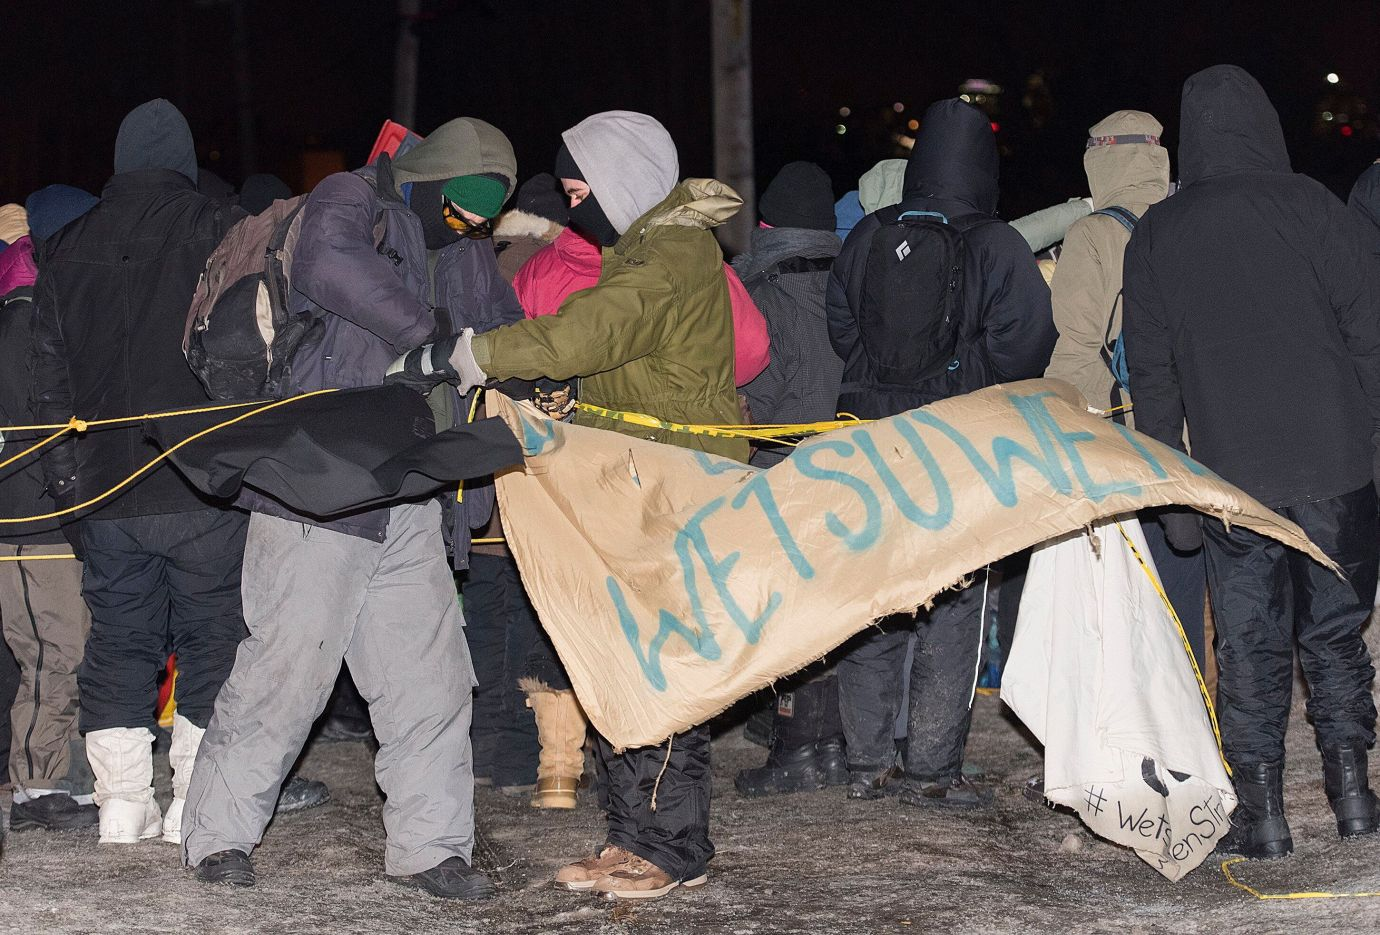 Protesters remove a sign as they leave rail blockade in Saint-Lambert, Que. on Friday.